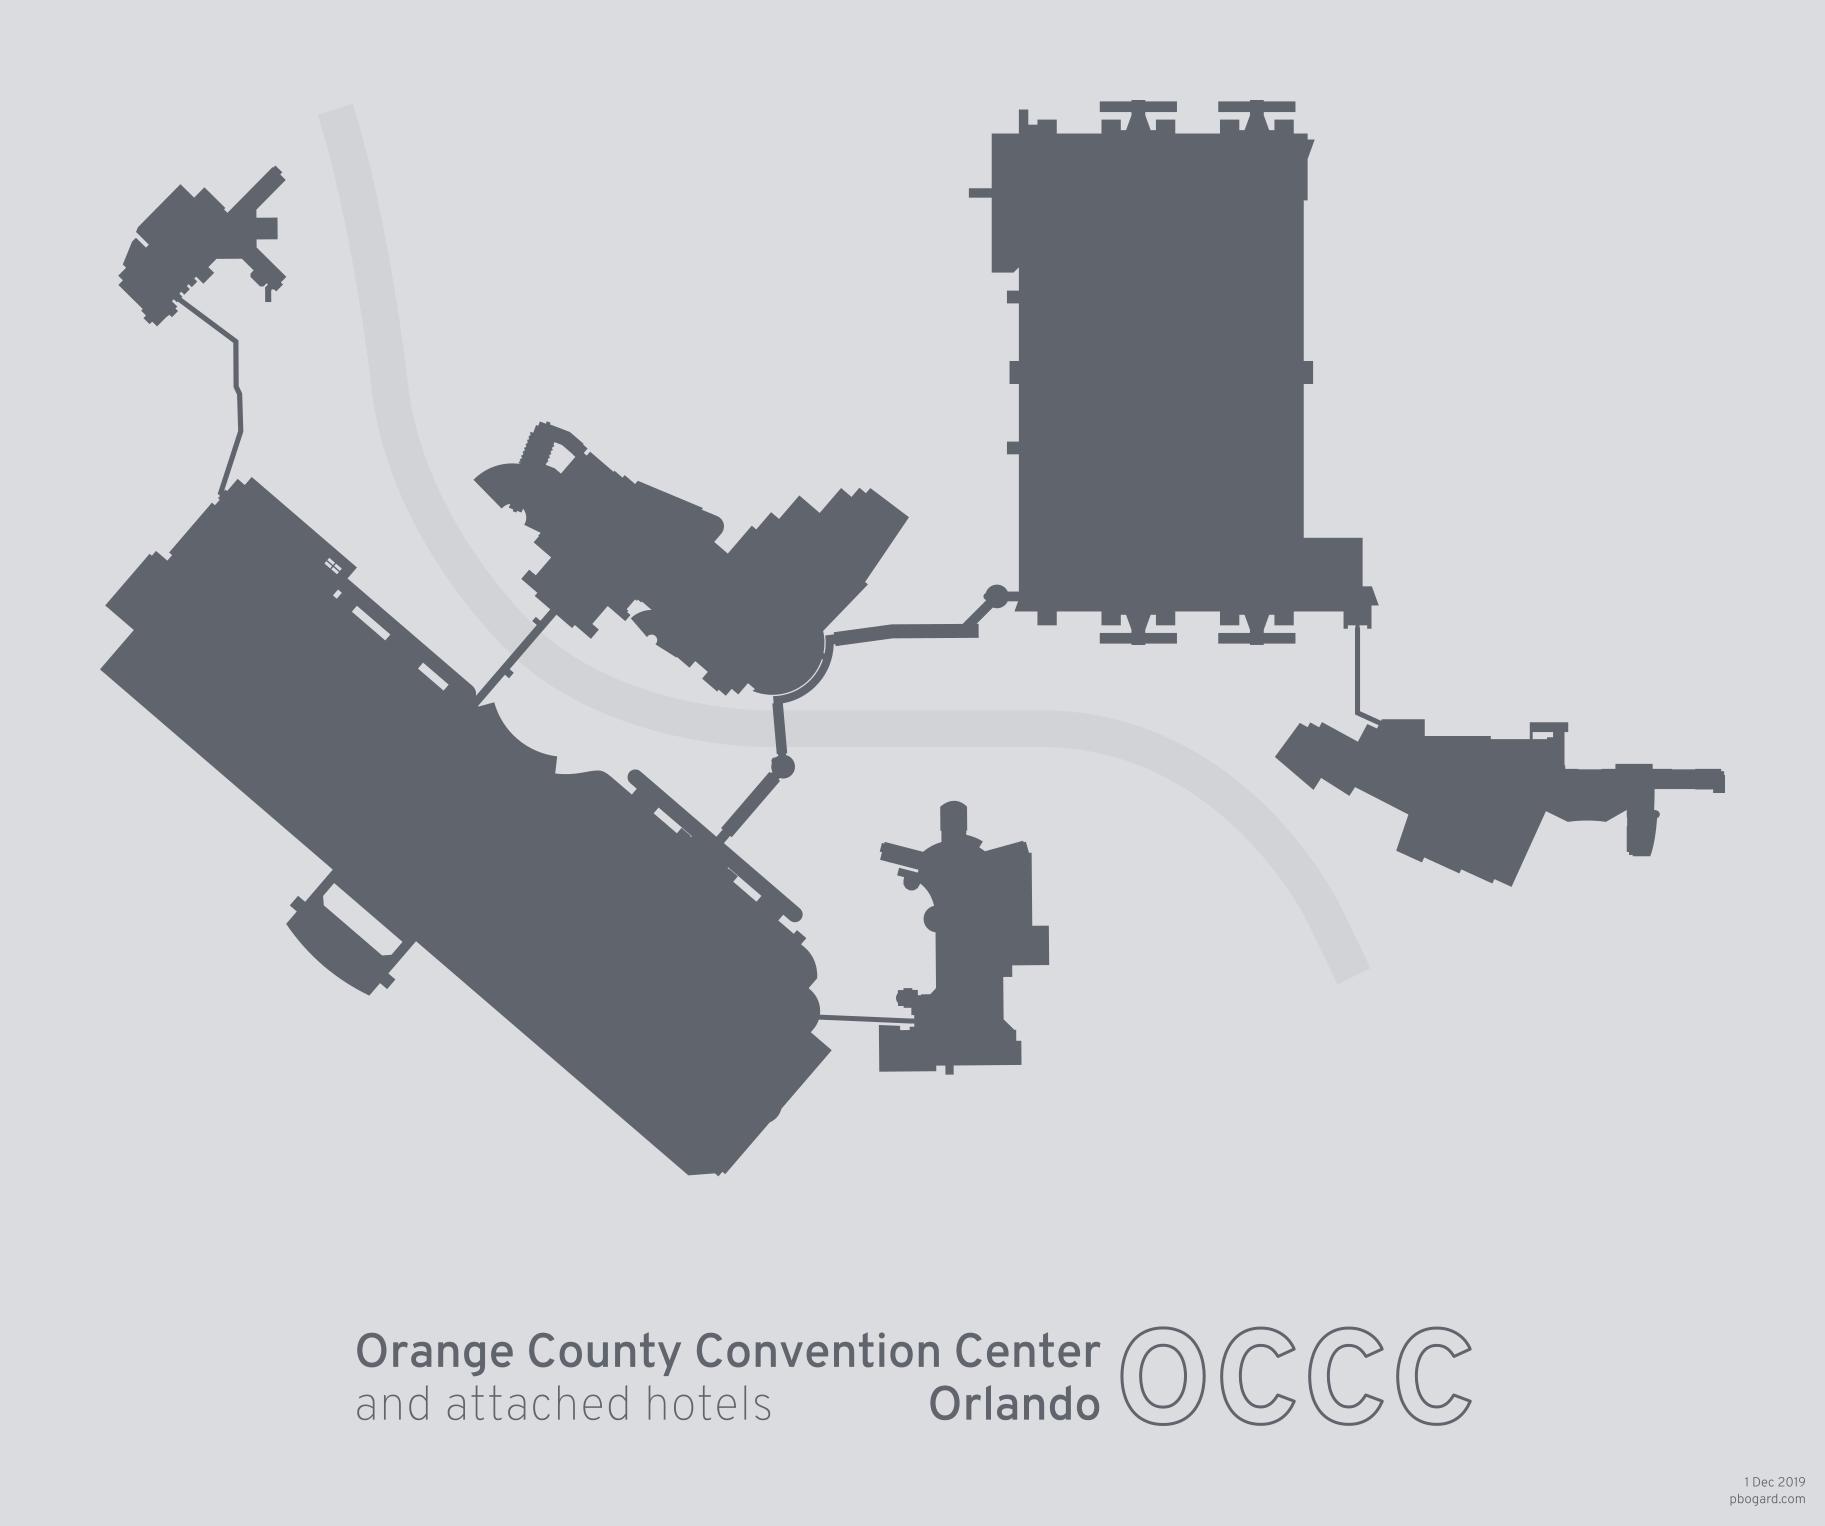 Silhouette of the Orange County Convention Center and its attached hotels, Orlando, Florida